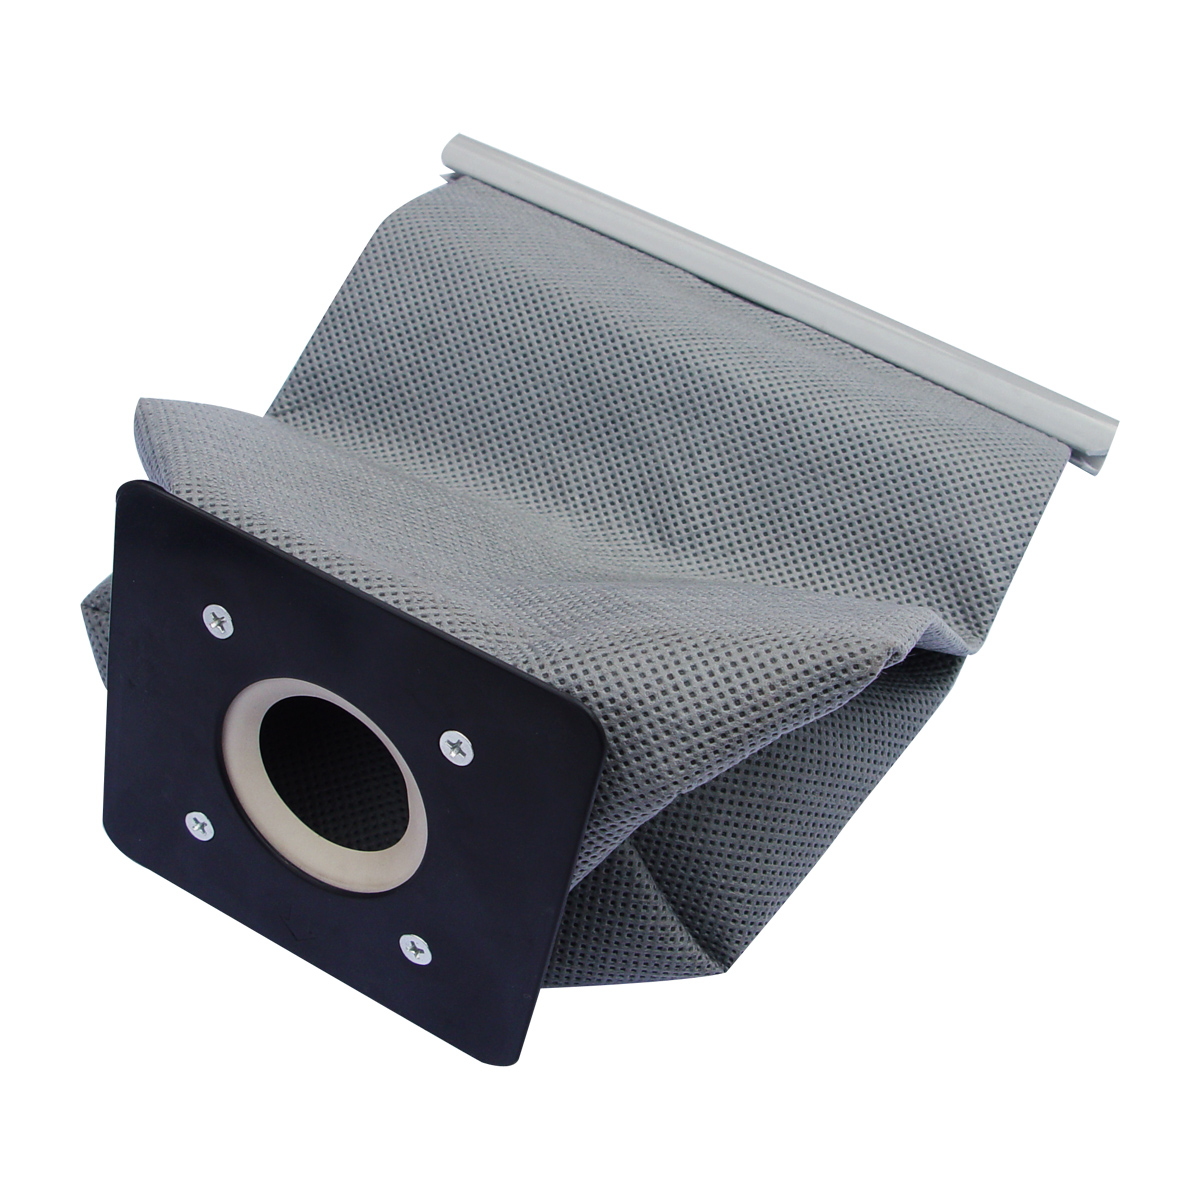 Vacuum cleaner vacuum cleaner d957 d-957 non-woven bags dust bag 11x10cm(China (Mainland))